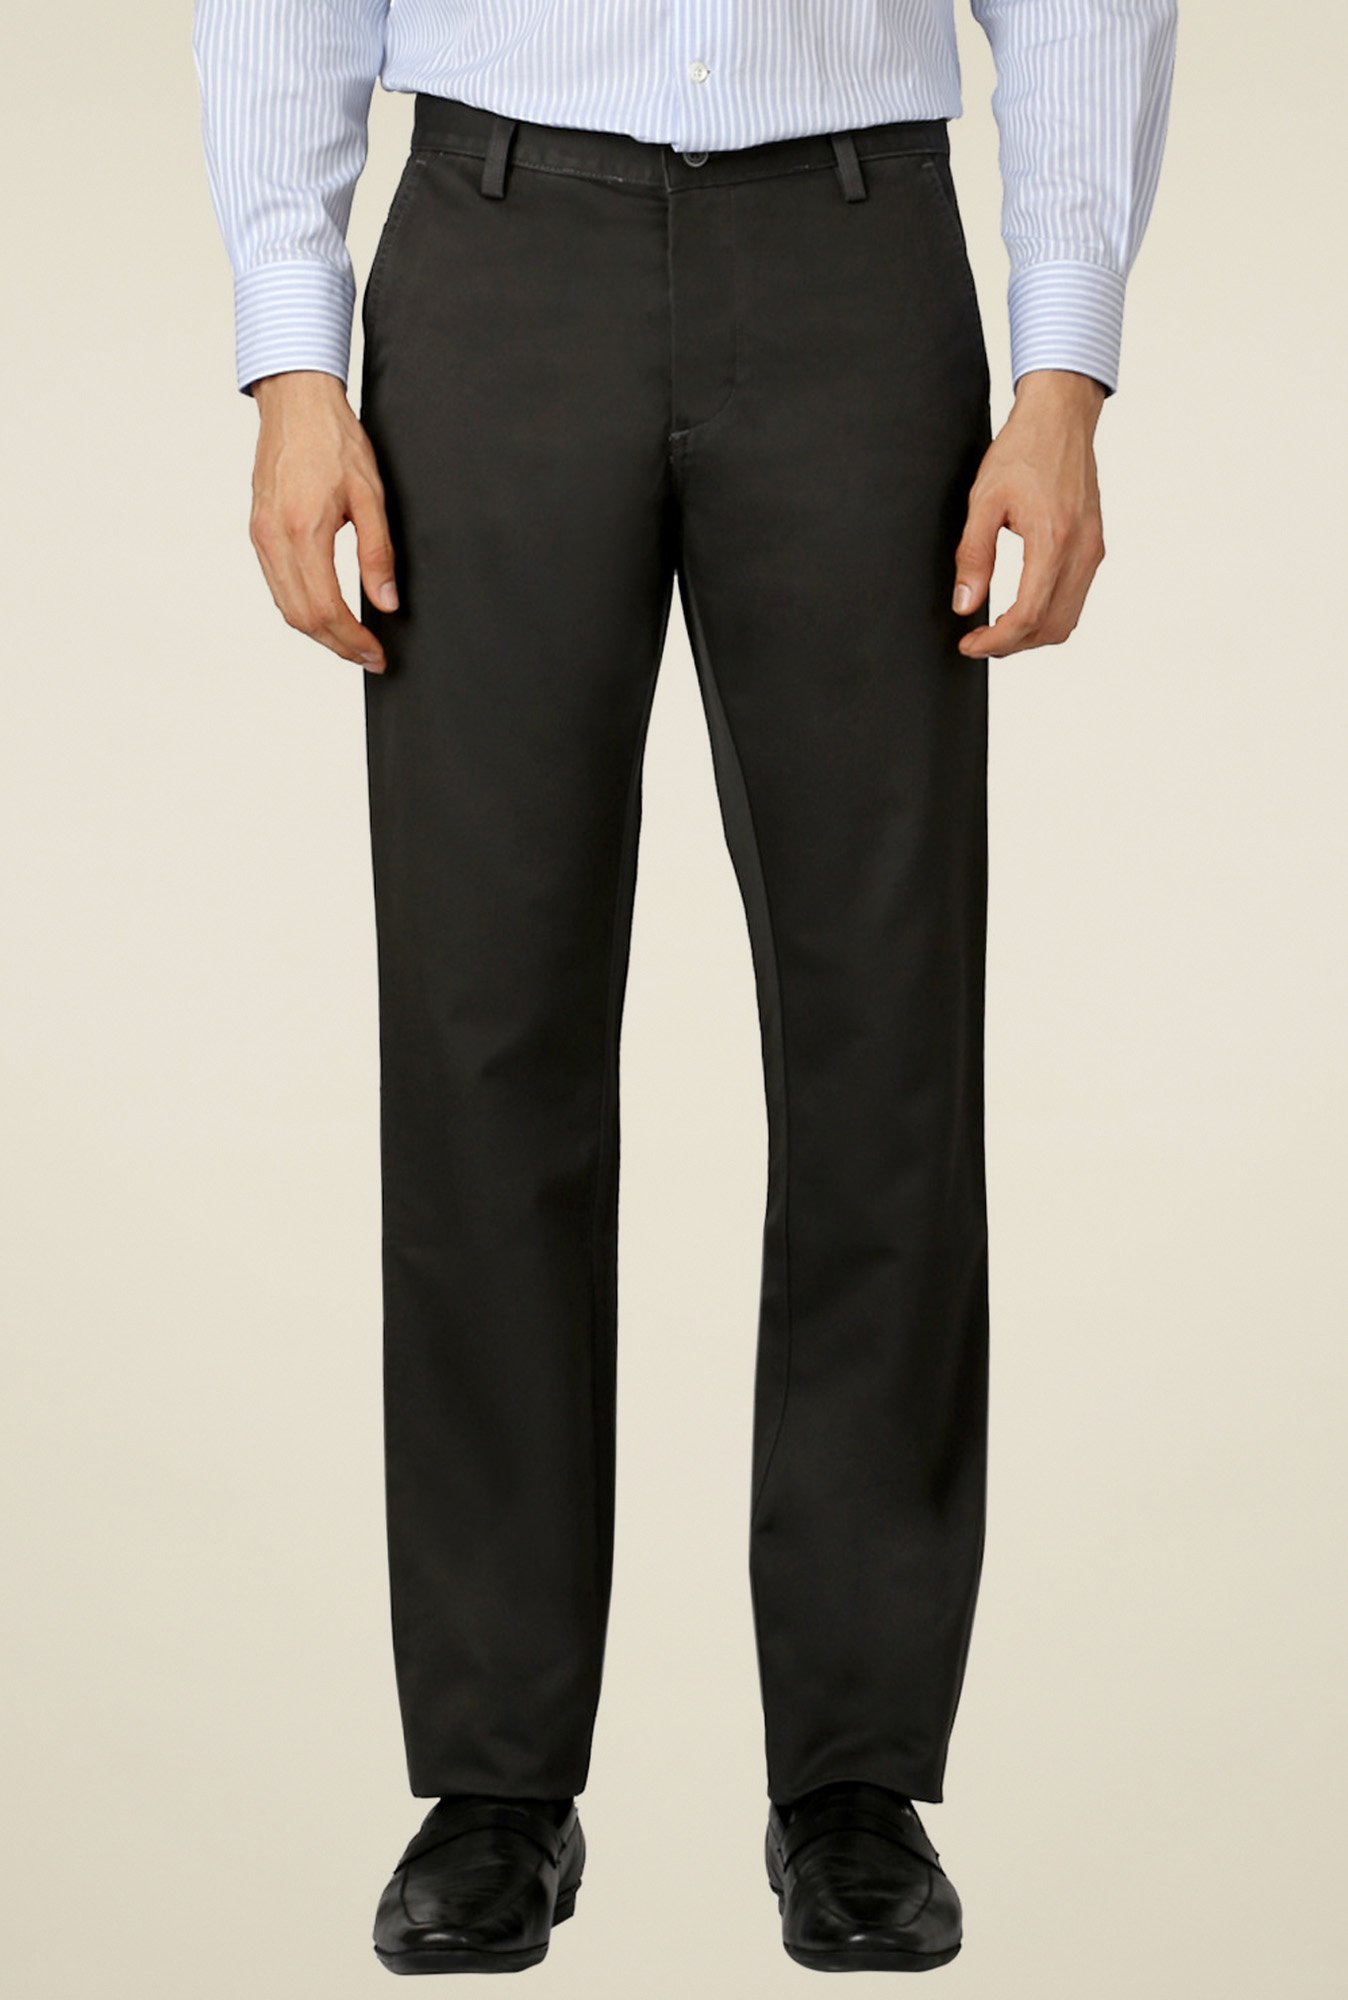 Allen Solly Black Mid Rise Trousers